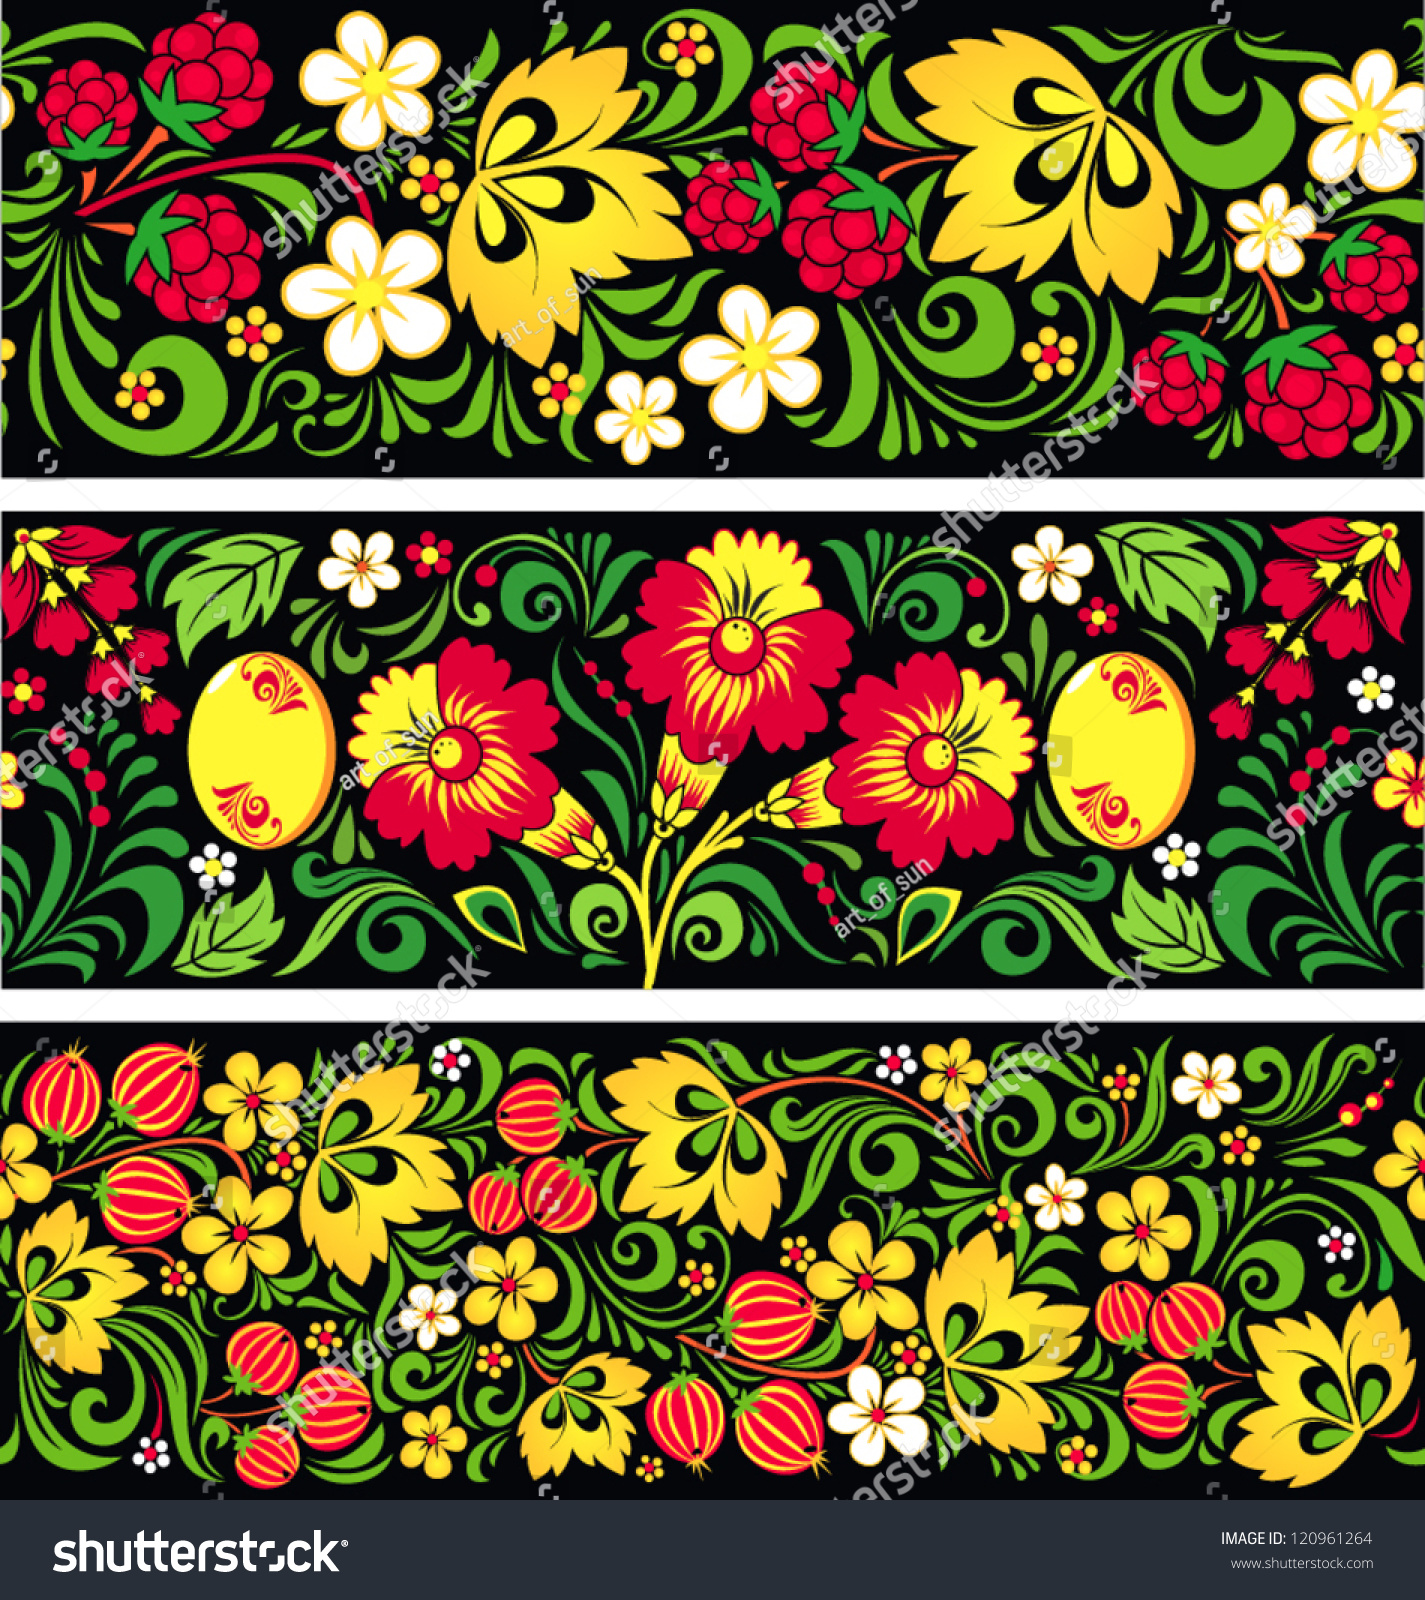 set seamless patterns traditional russian style stock vector set of seamless patterns in traditional russian style hohloma a brand of russian traditional or nts